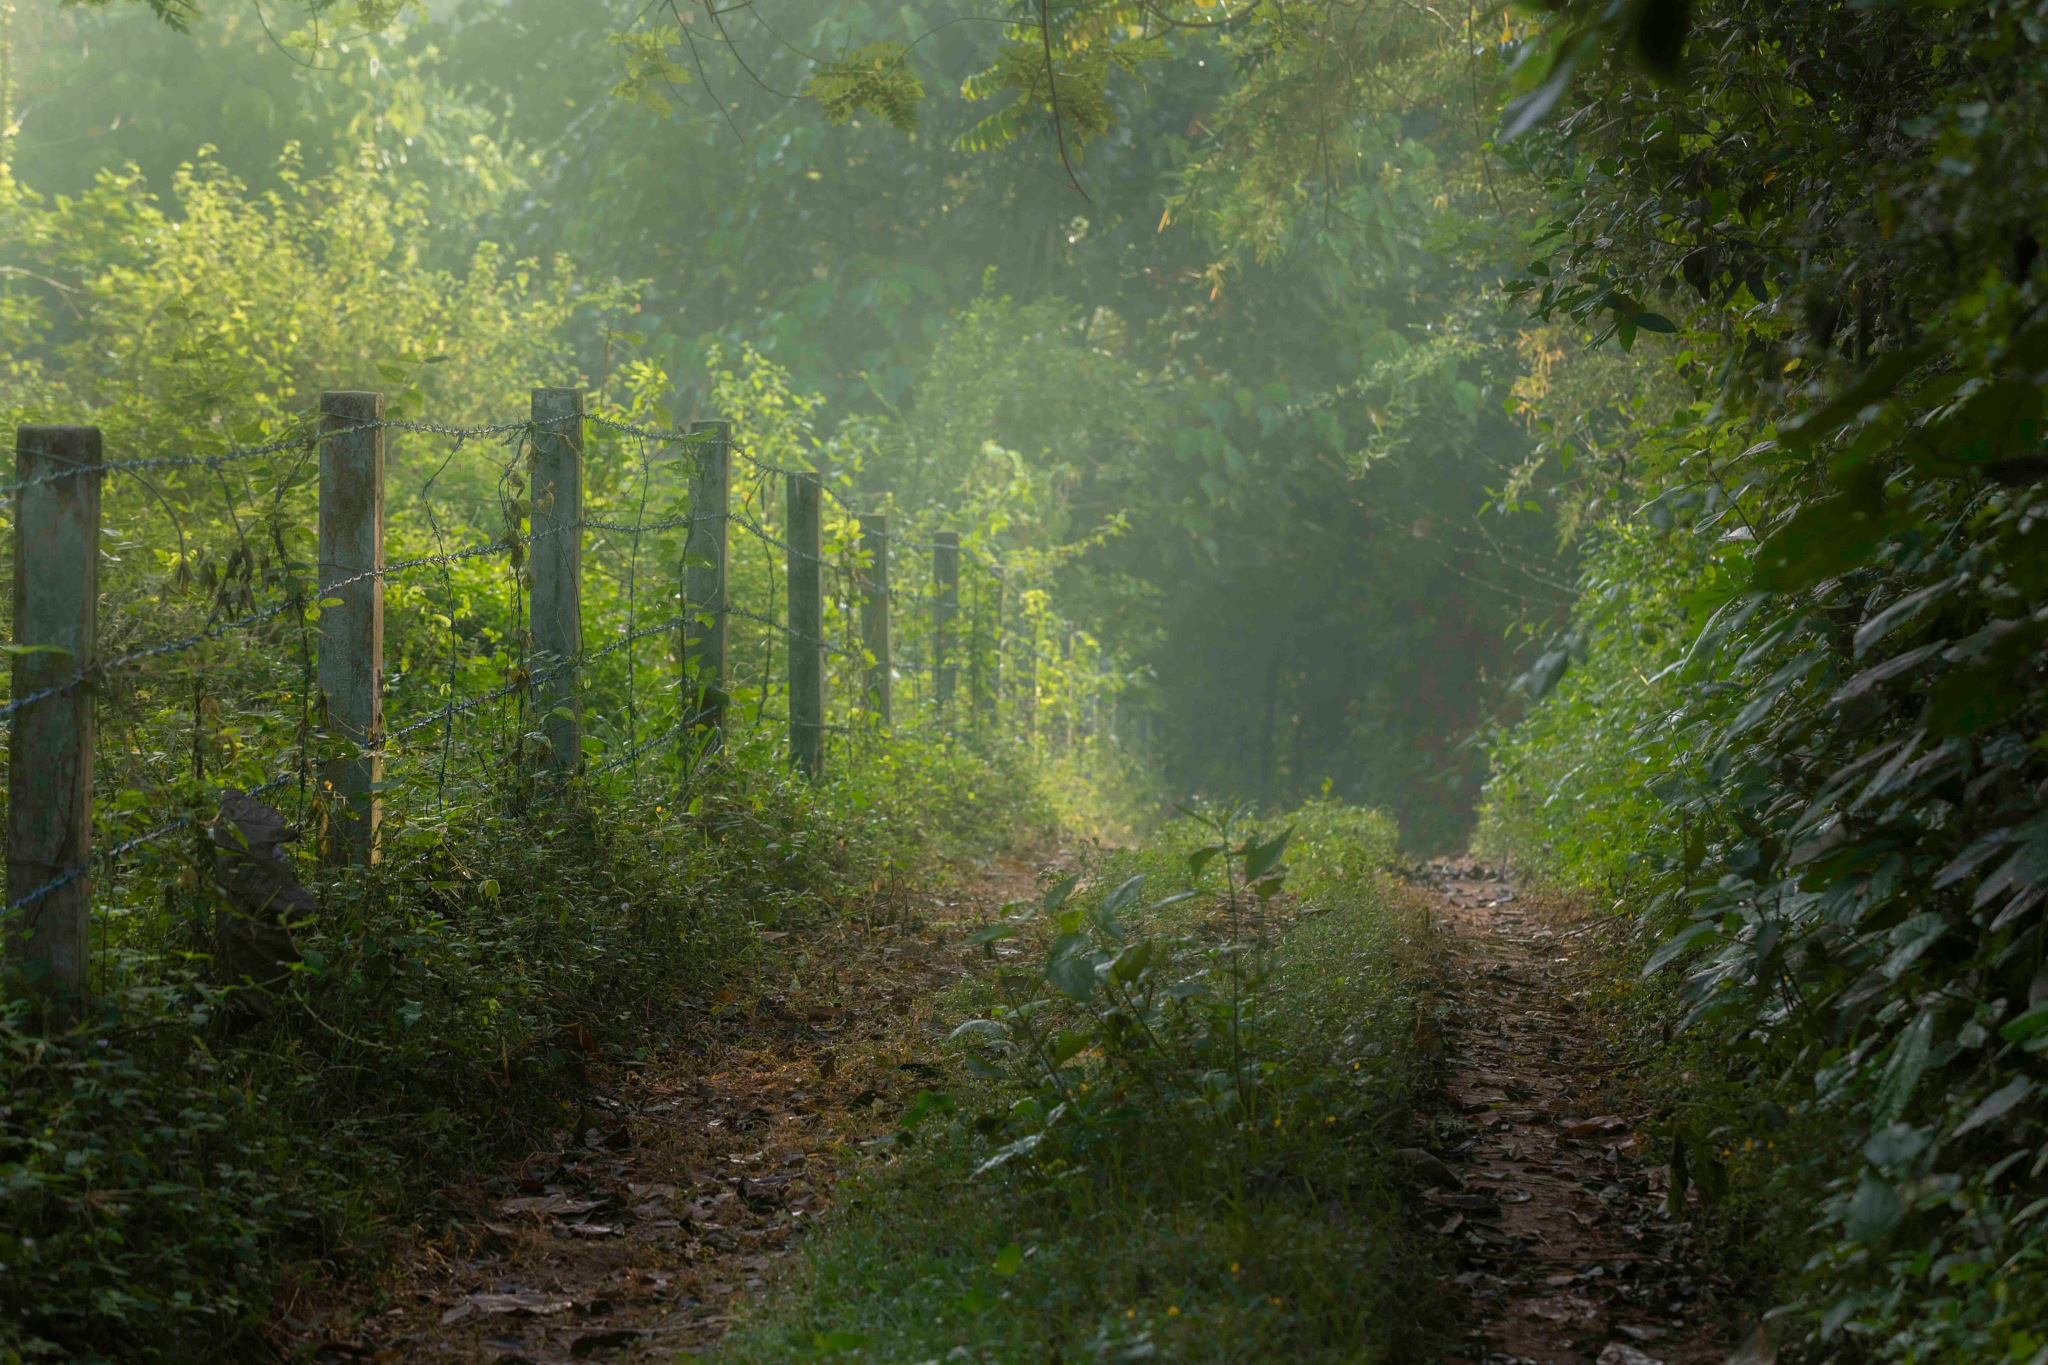 Country Roads by Vikas Datta